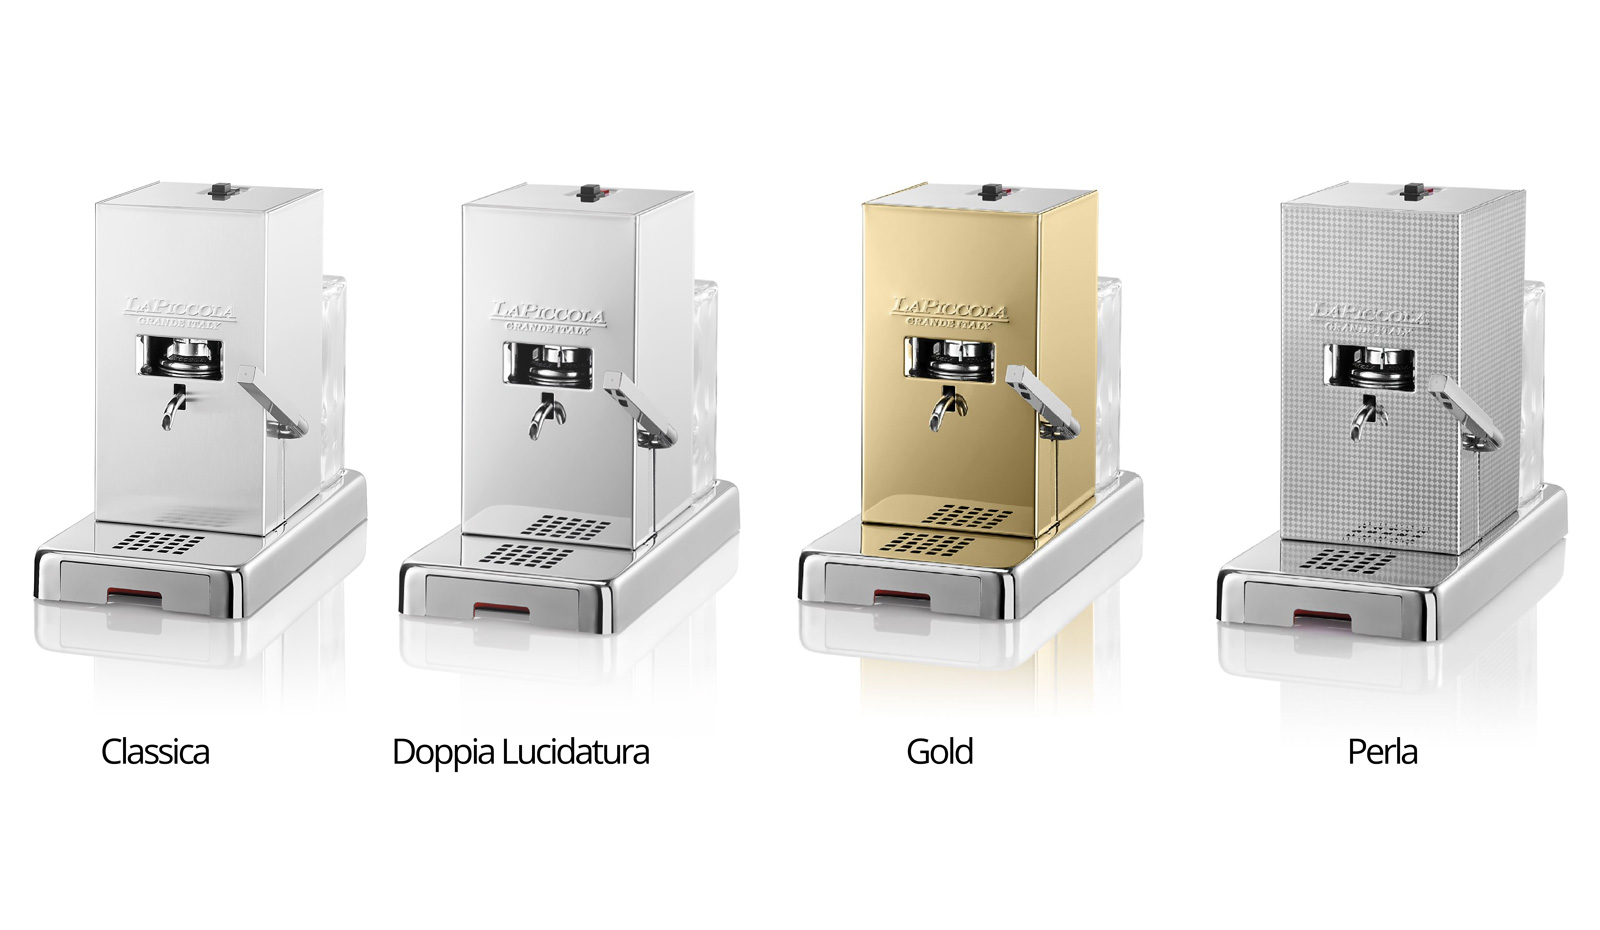 suisstore.com - Online shop for unique products with tradition, passion and distinctive taste | Coffee machine ESE-Pods LaPiccola Piccola | Only when you taste, feel and see the passion of the manufacturers